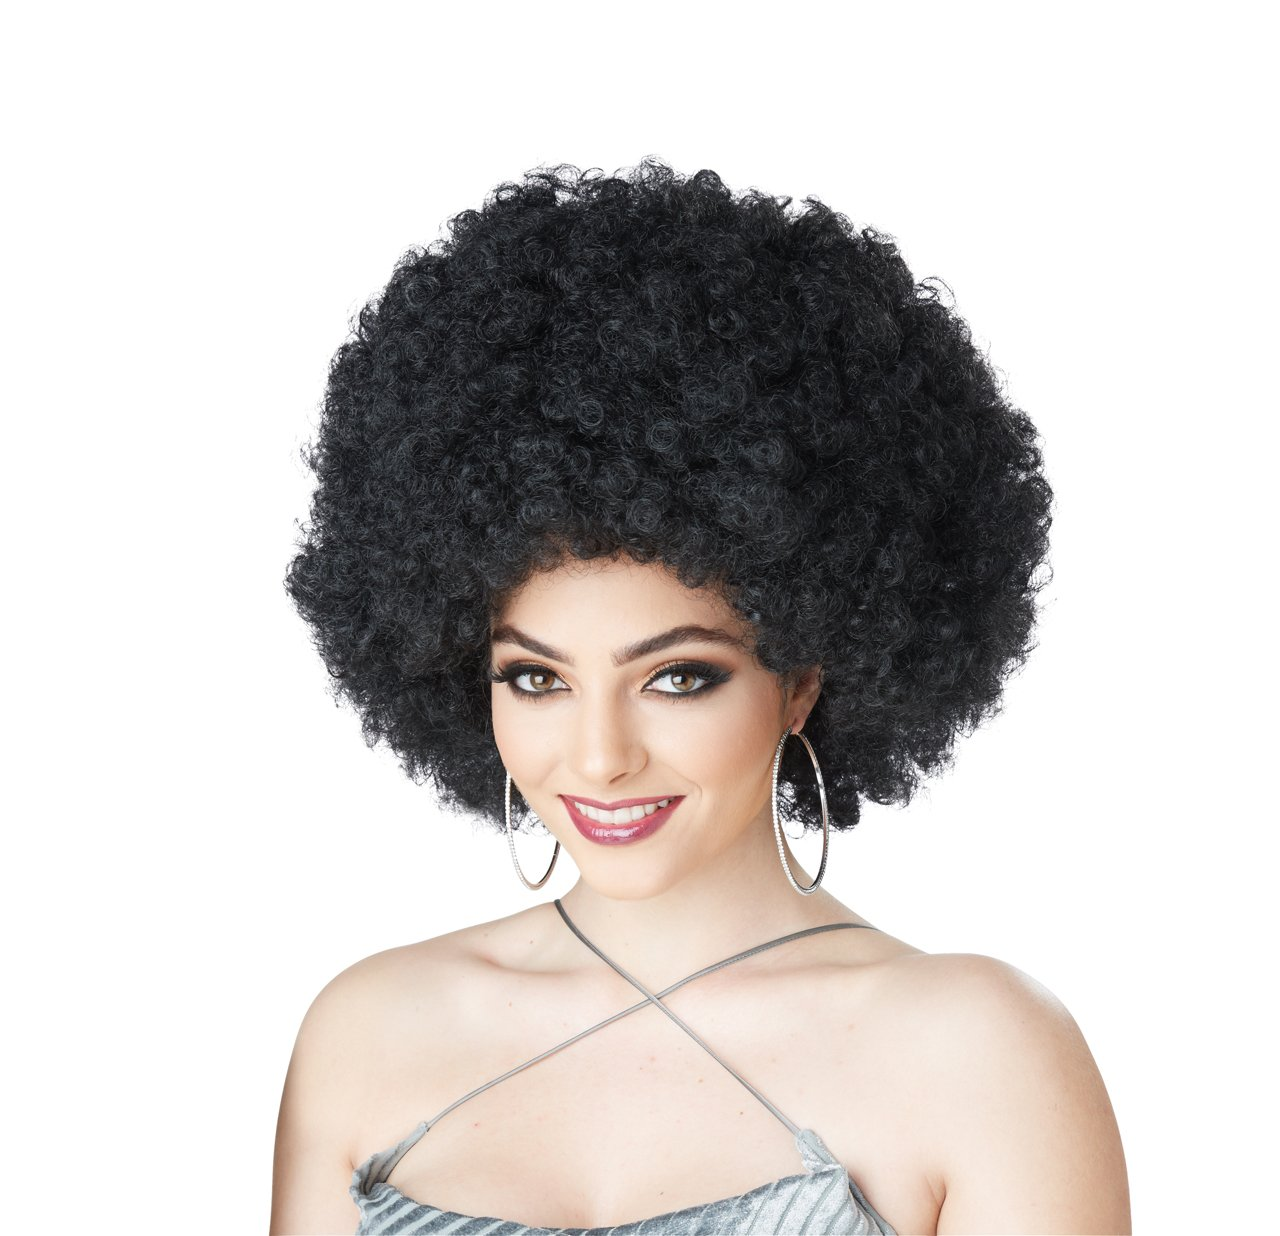 Foxy Lady Ghetto Disco Fab 70's Adult Costume Wig #70805